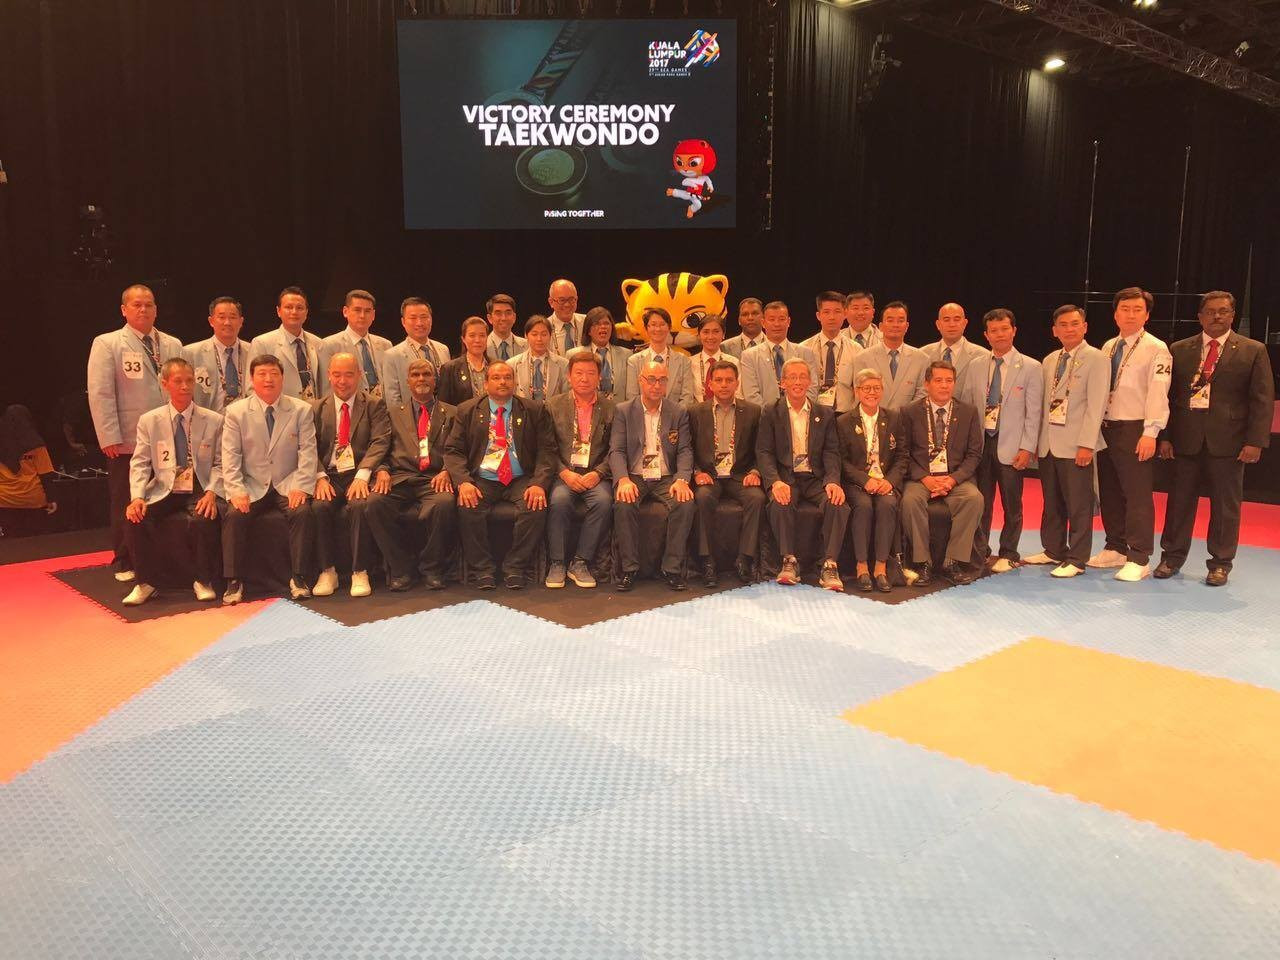 Eleven countries competed in the taekwondo competition in Kuala Lumpur ©OTU